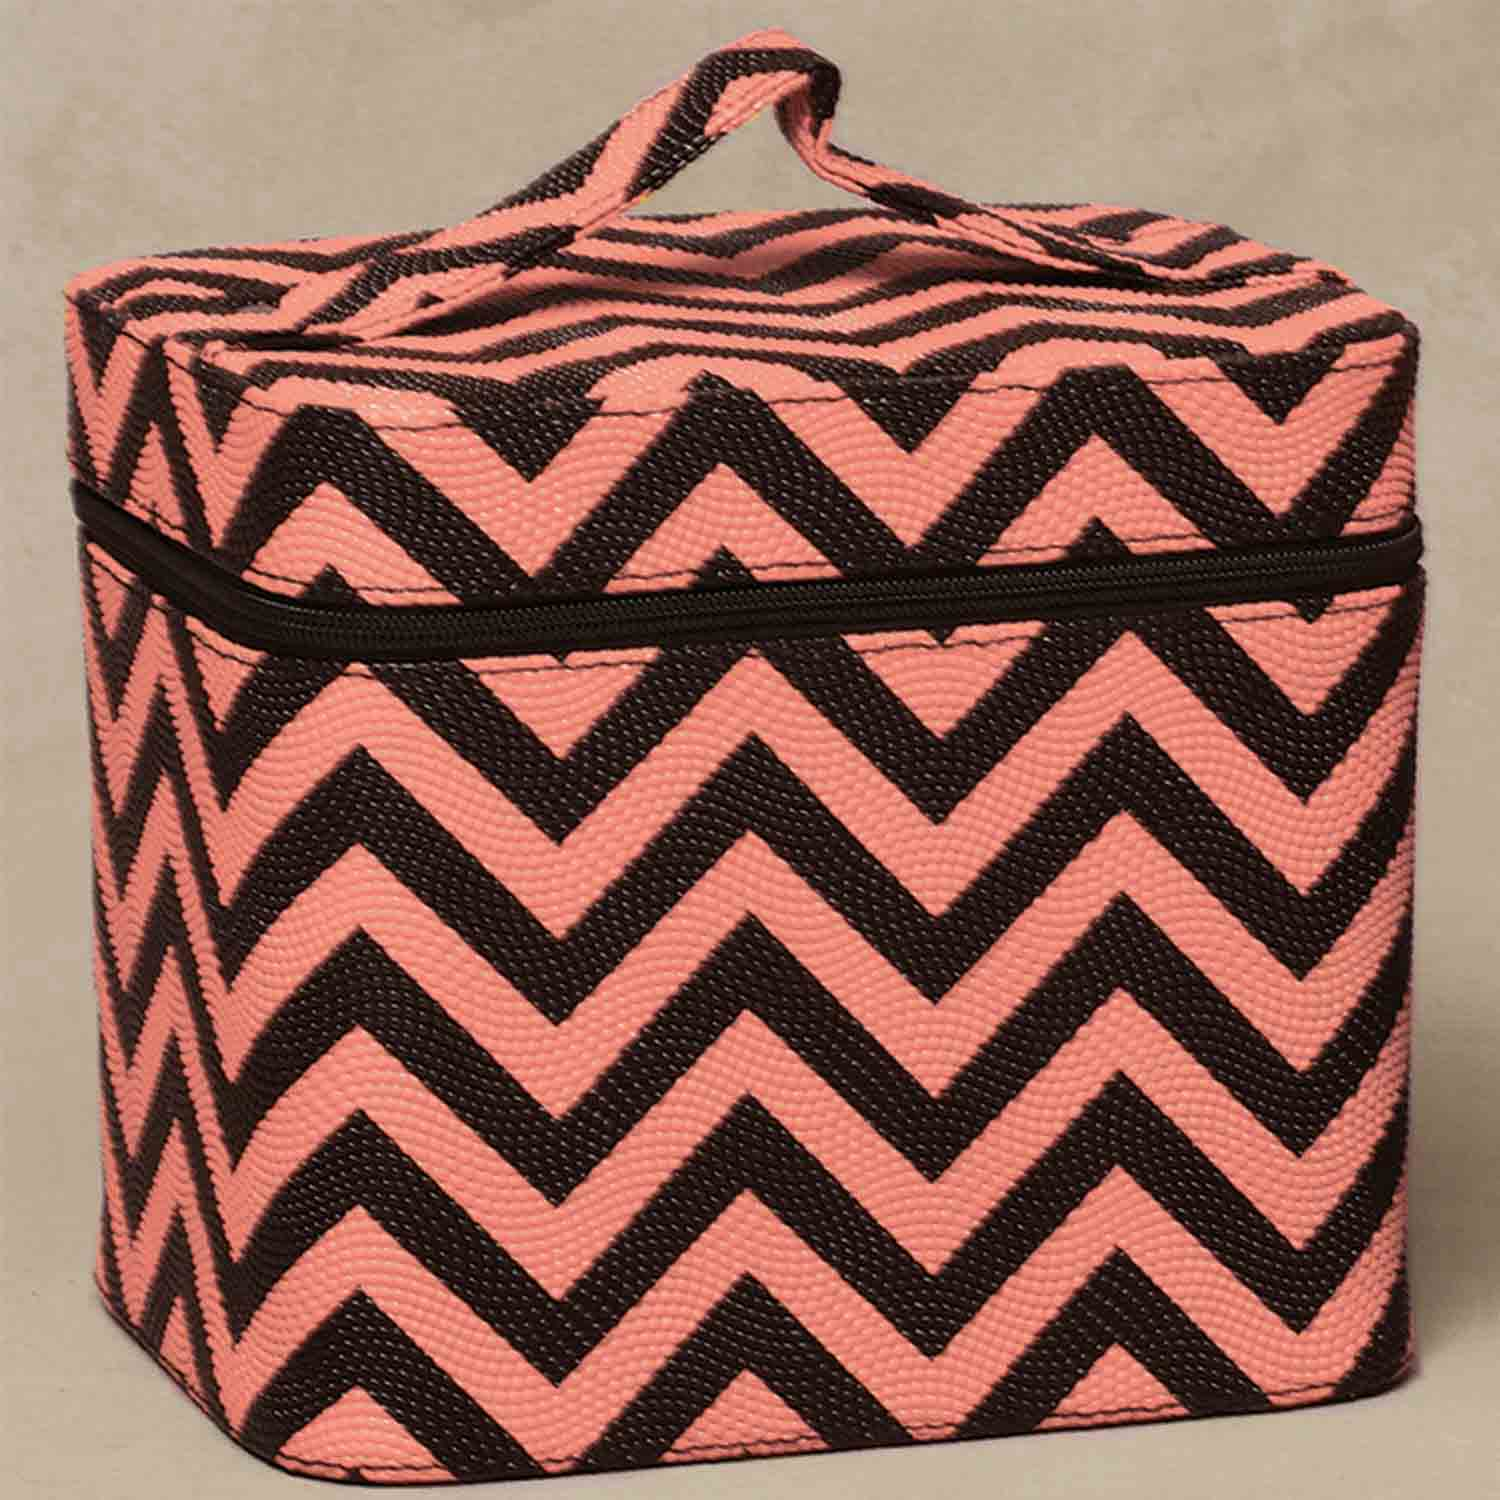 "CHEVRON RECTANGLE RETRO CASE MELON/BLACK 9.25""X7""X8"" X7246 *30sp"